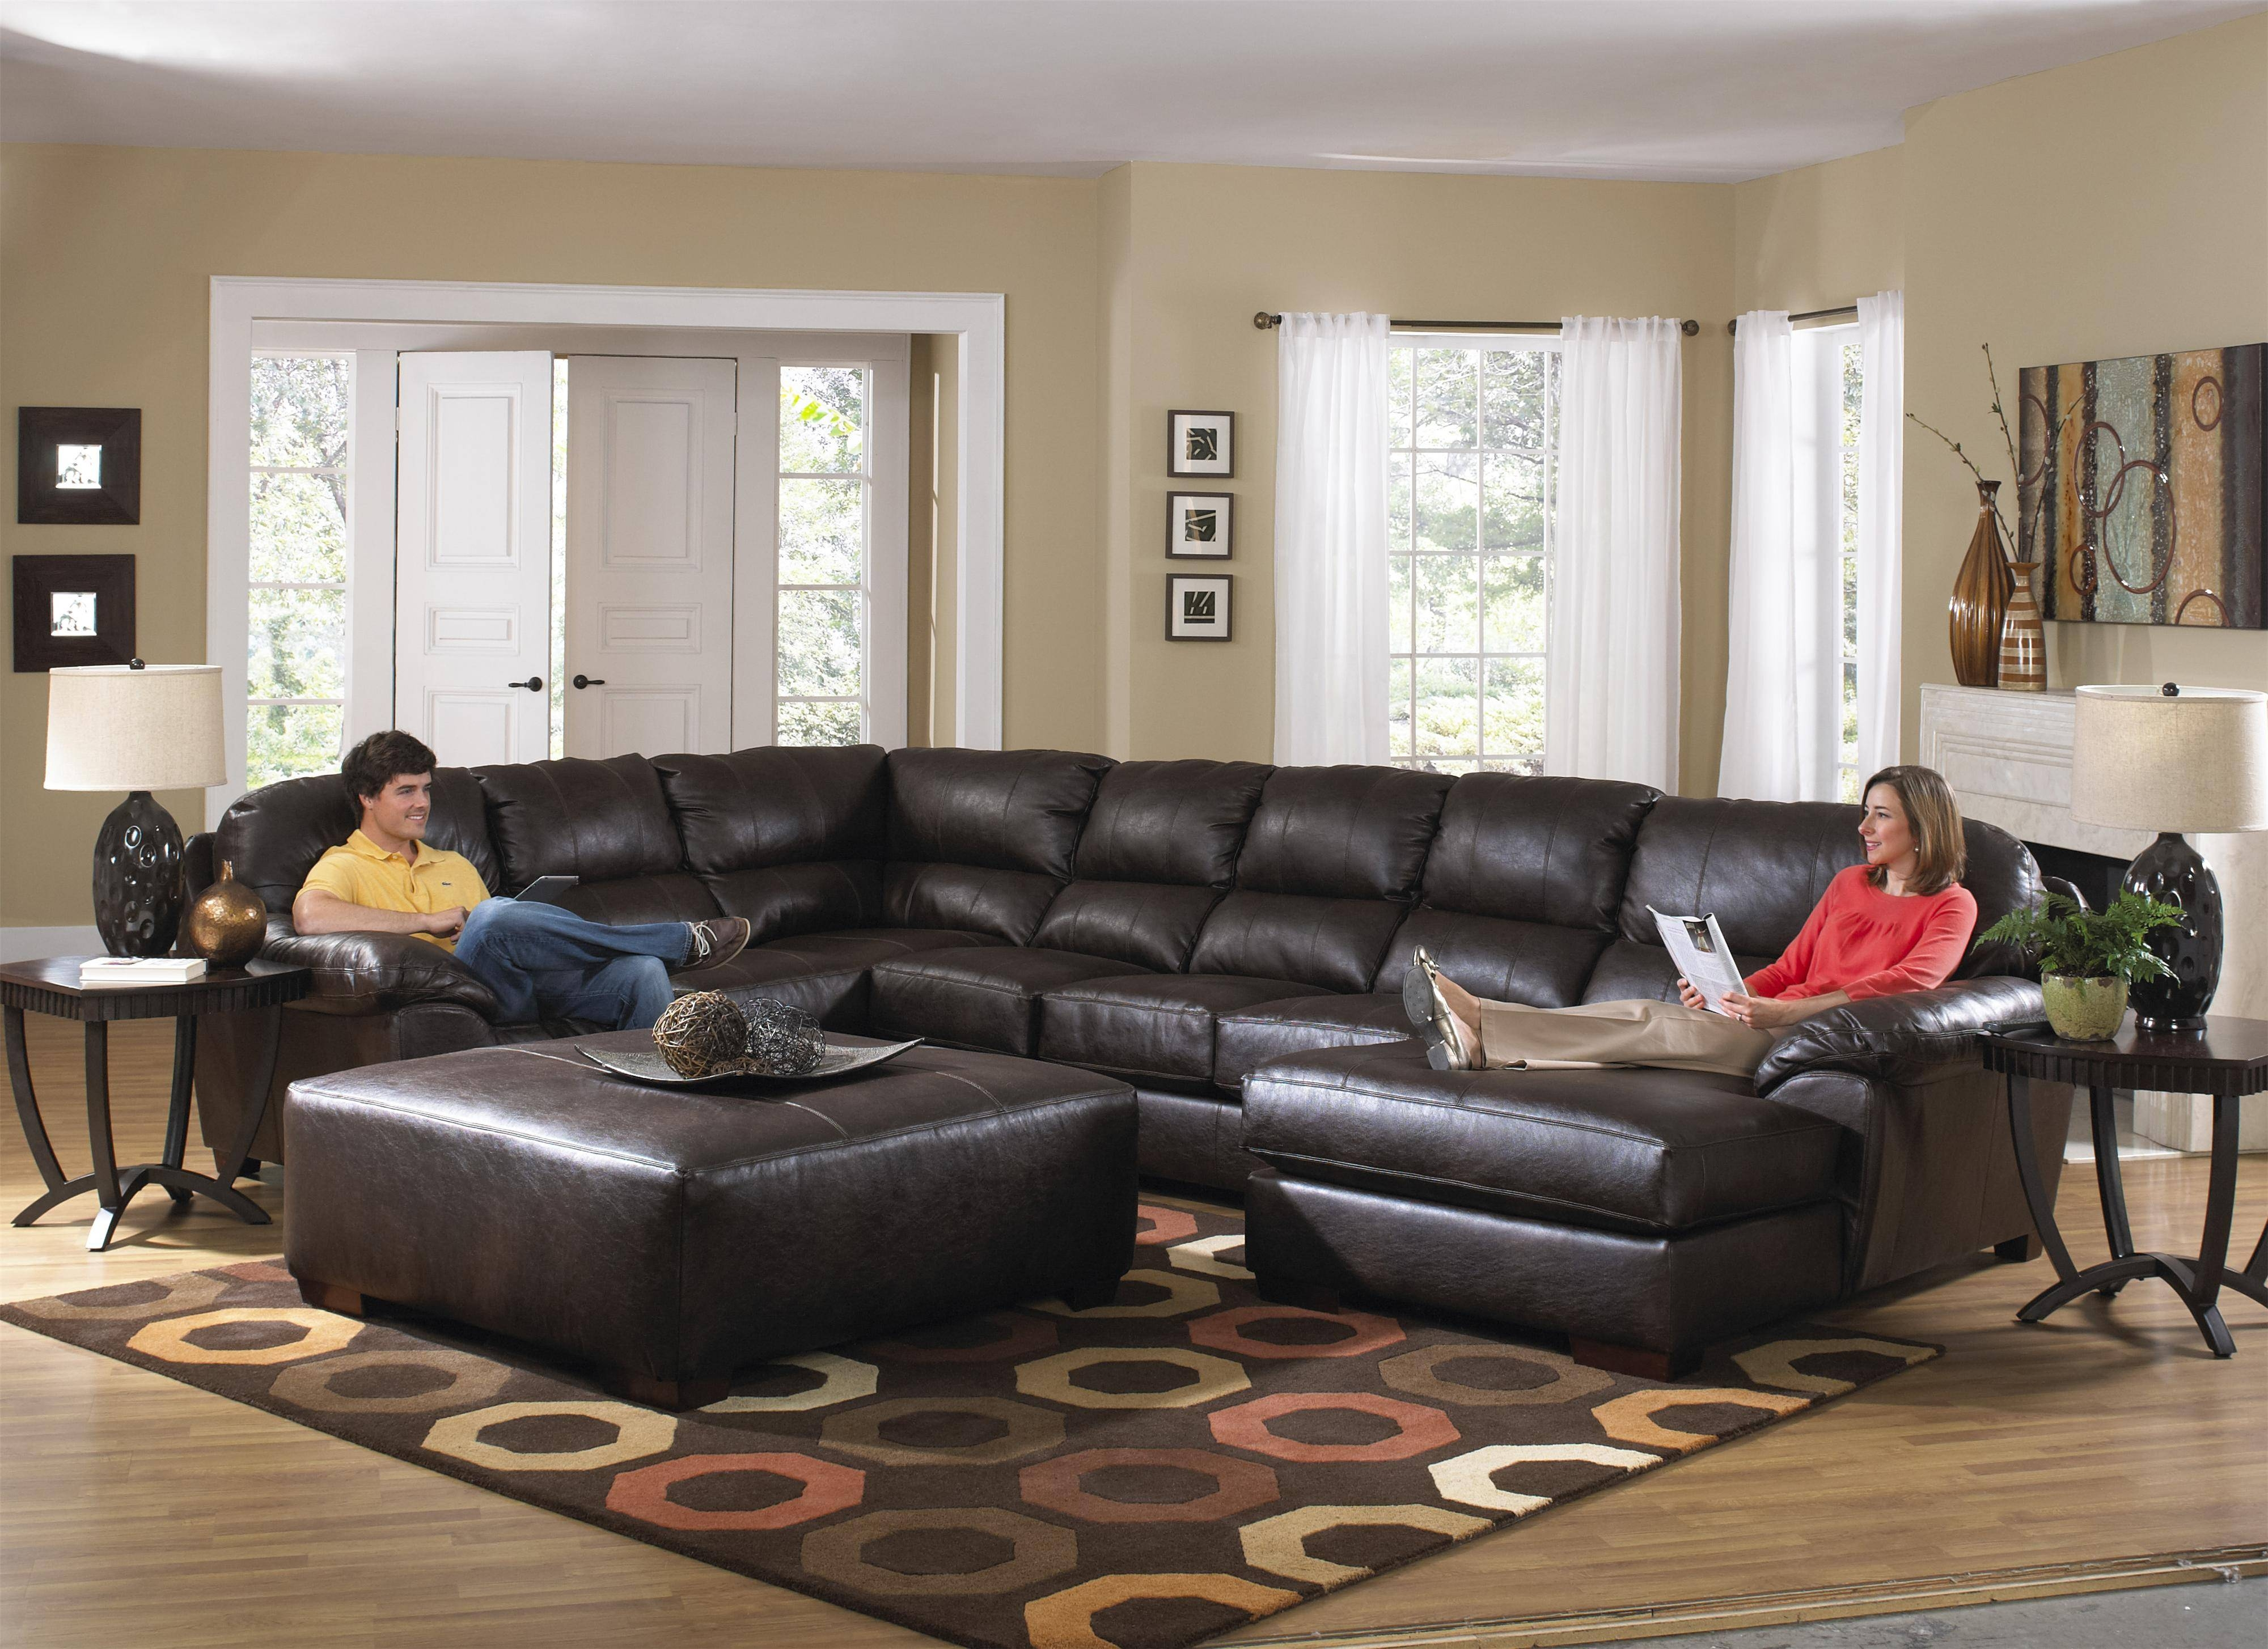 Furniture: Interesting Living Room Interior Using Large Sectional within Large Comfortable Sectional Sofas (Image 13 of 25)